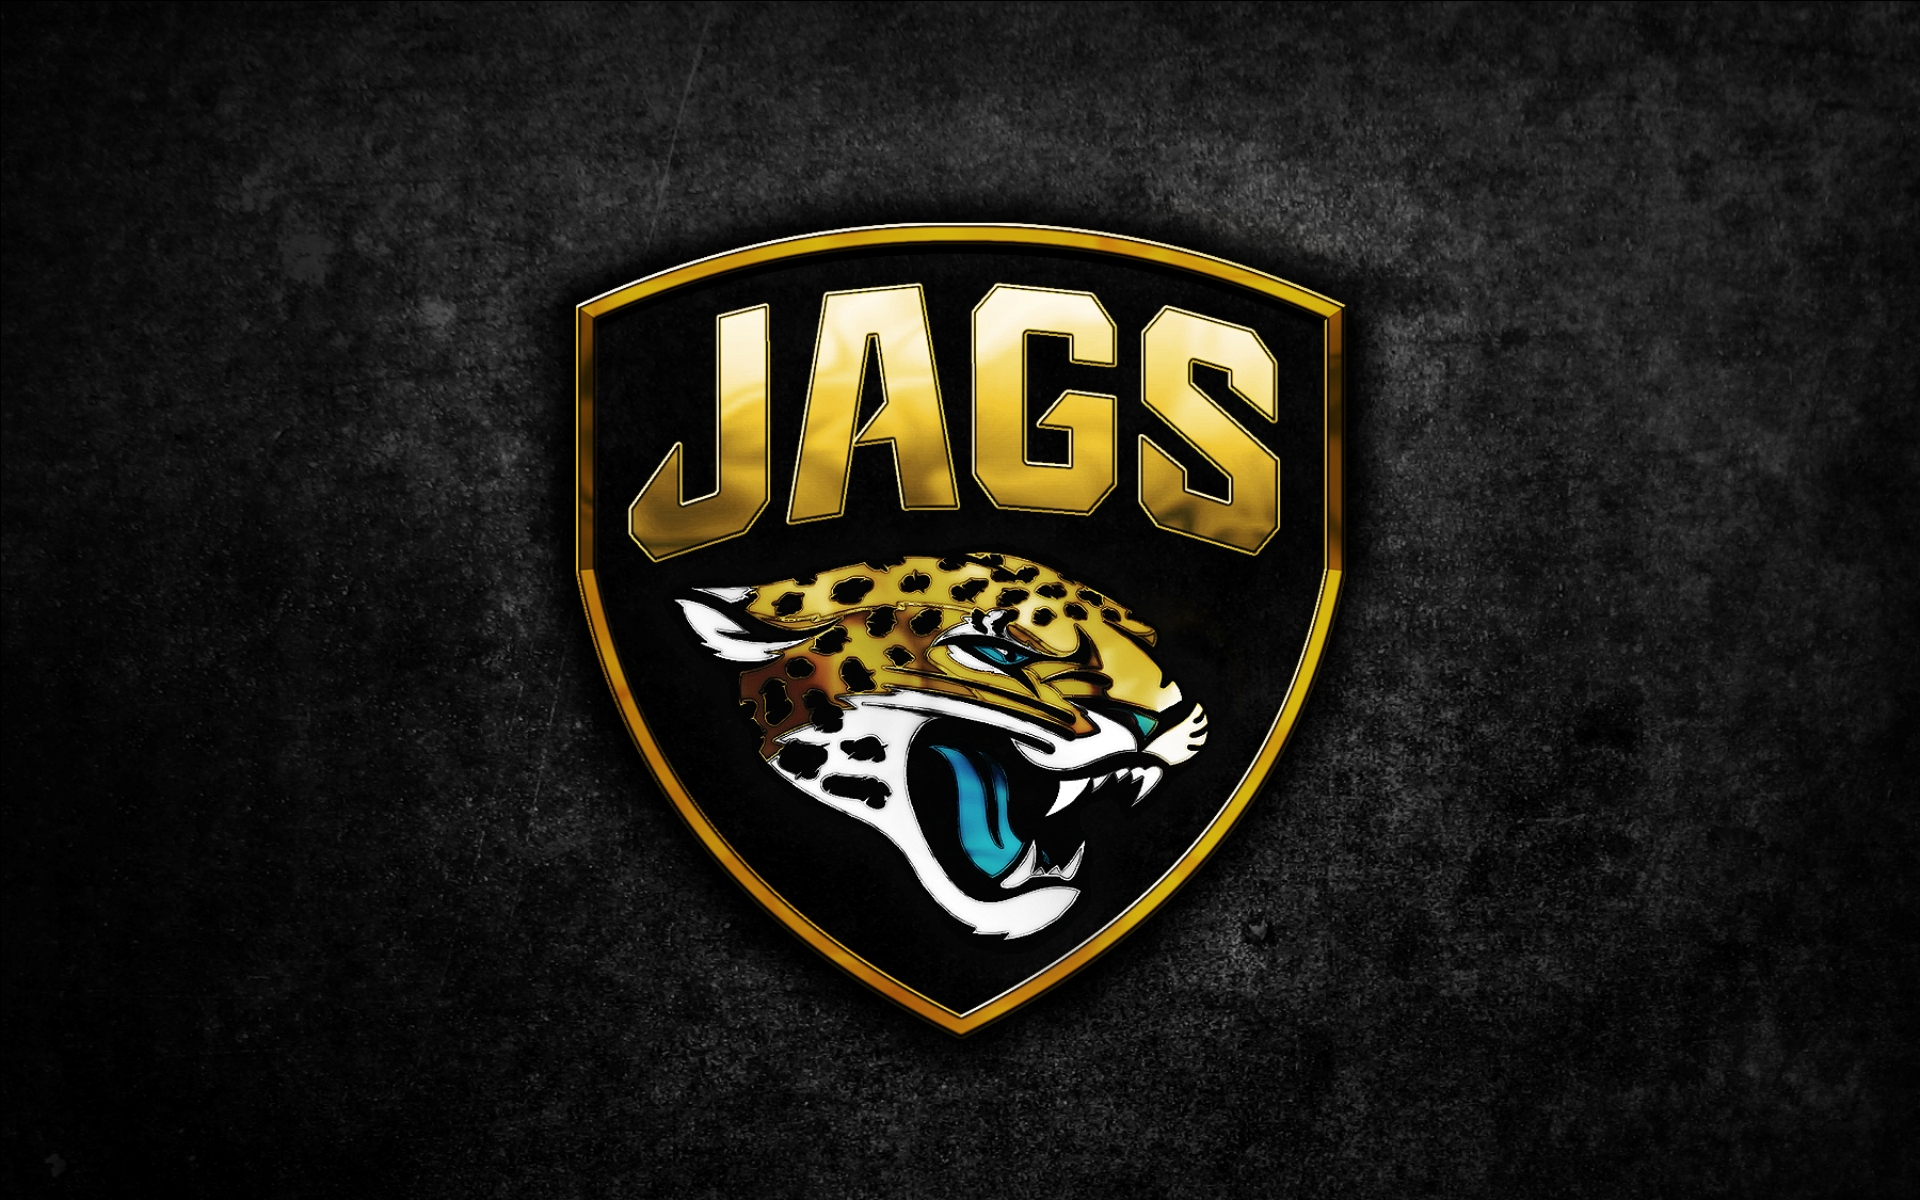 jacksonville jaguars new logo red wings wallpaper datsyuk 2013 1920x1200